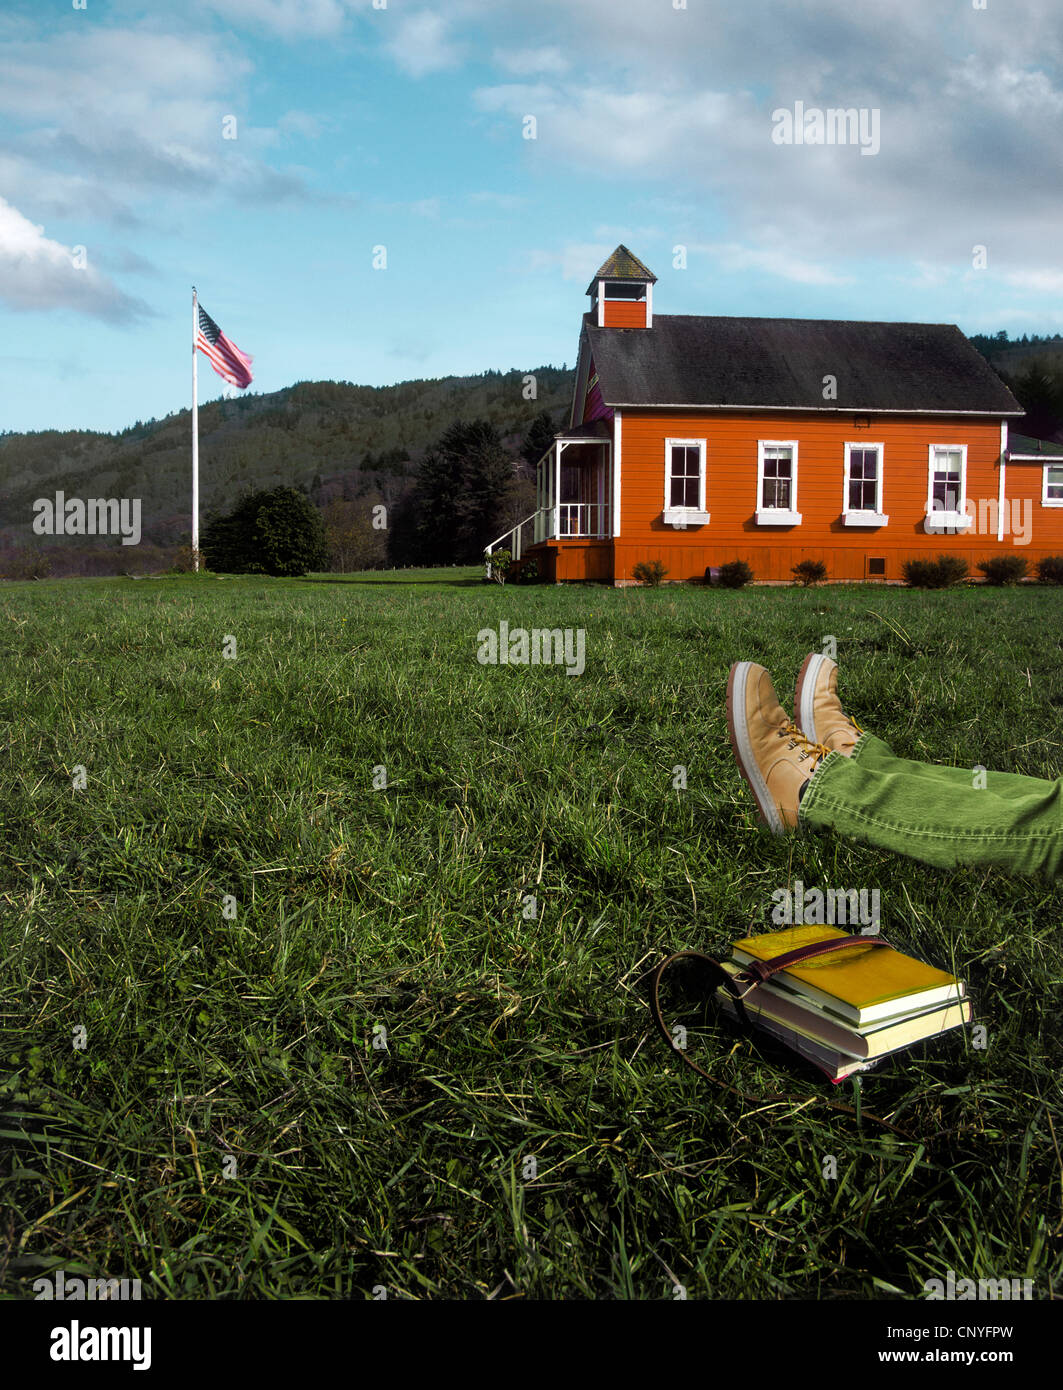 Person laying in Grass by Little Red Schoolhouse - Stock Image